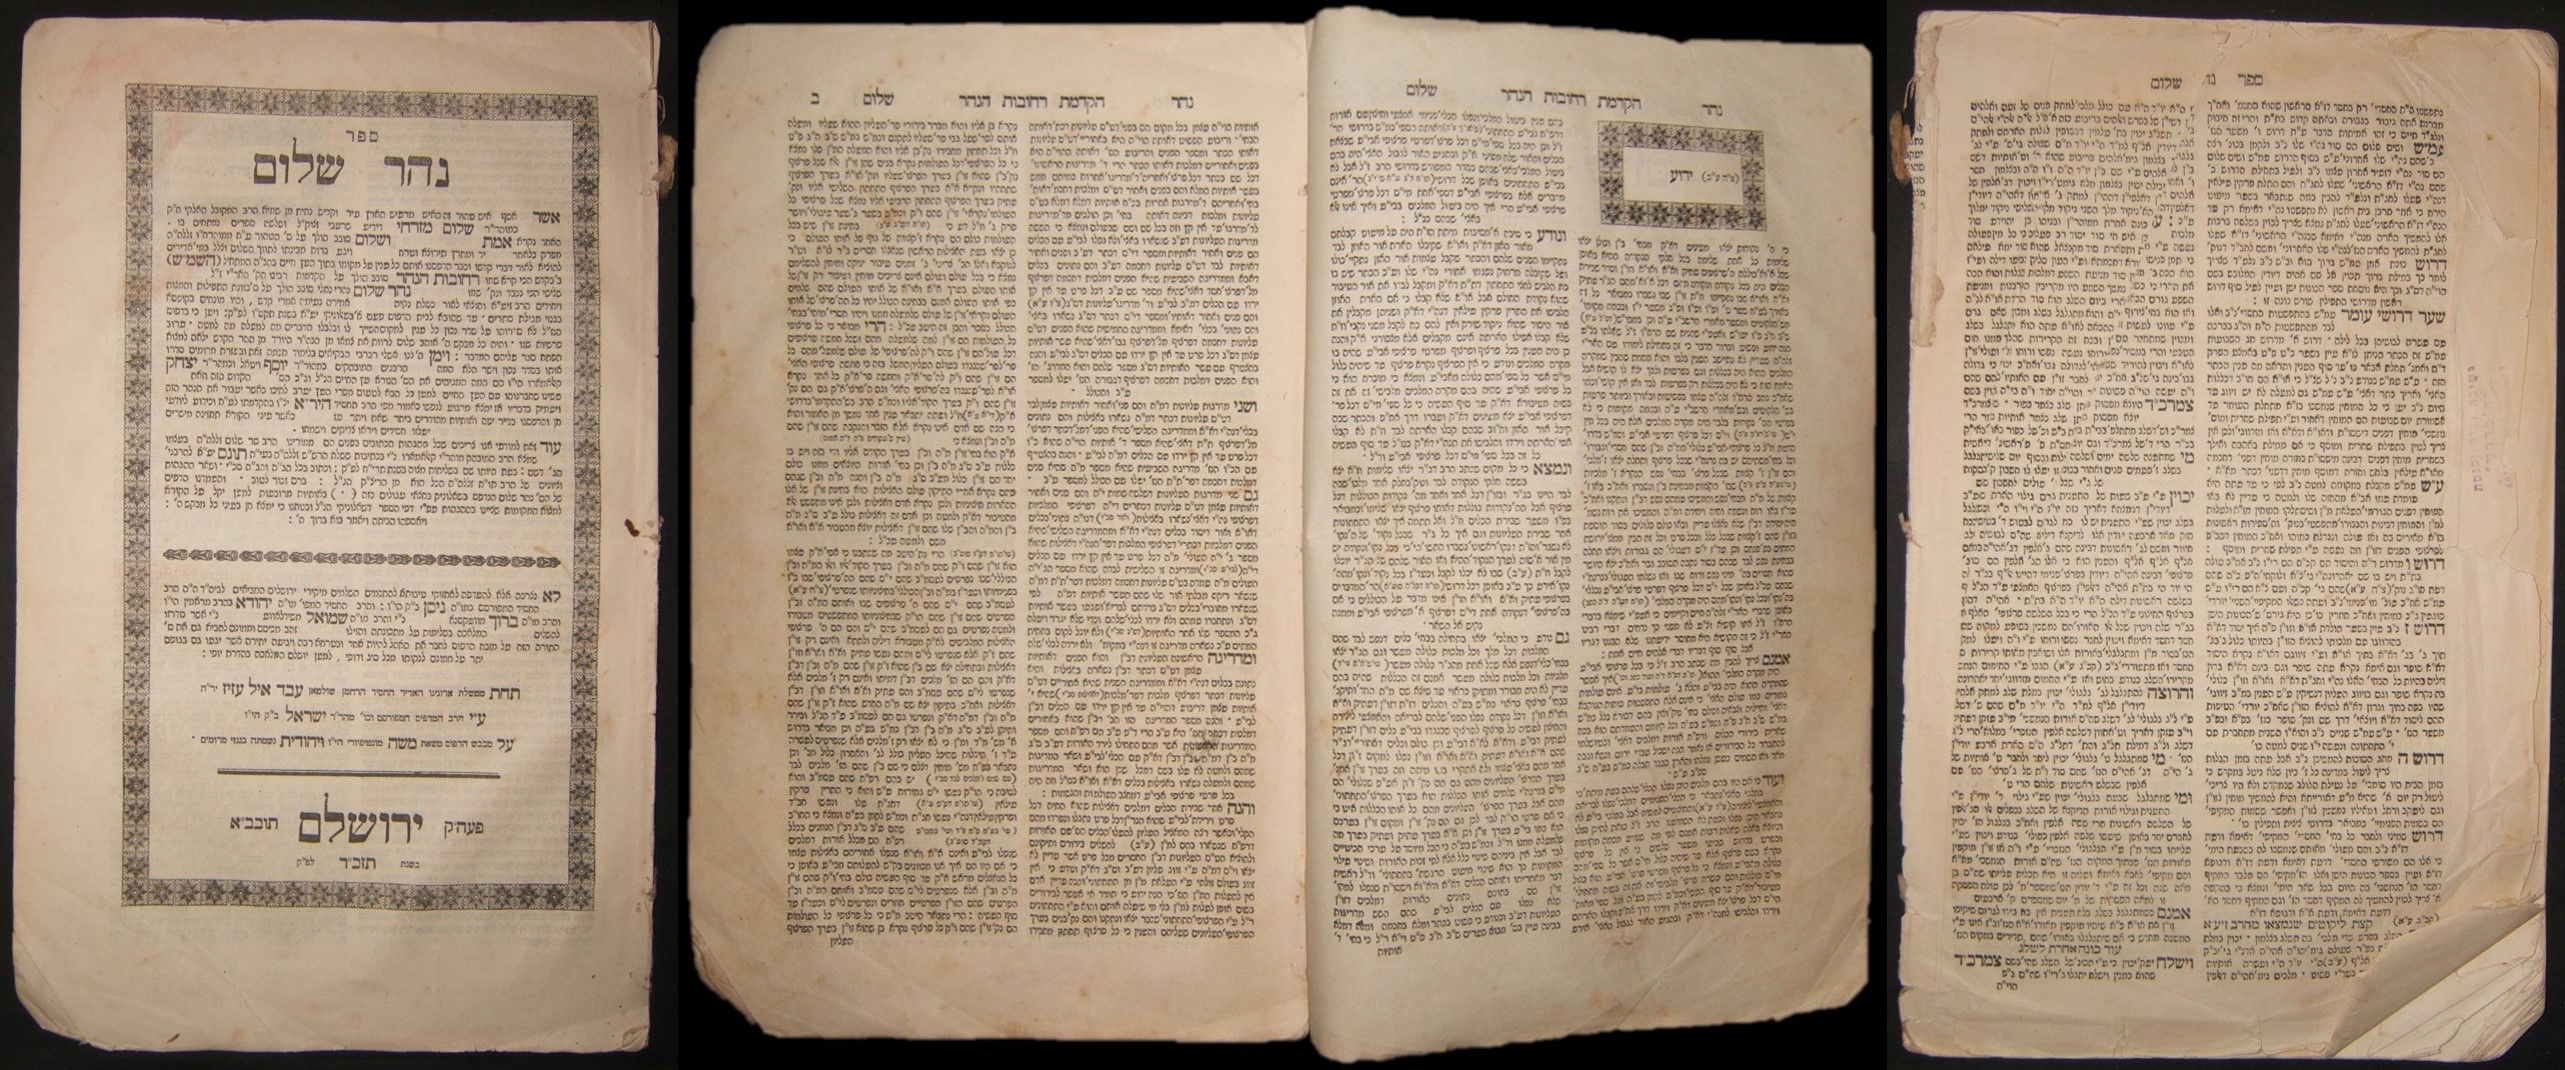 Responsa Sefer Nahar Shalom by Rabbi Sar Shalom Sharabi؛ طابعة اسرائيل باك 1867